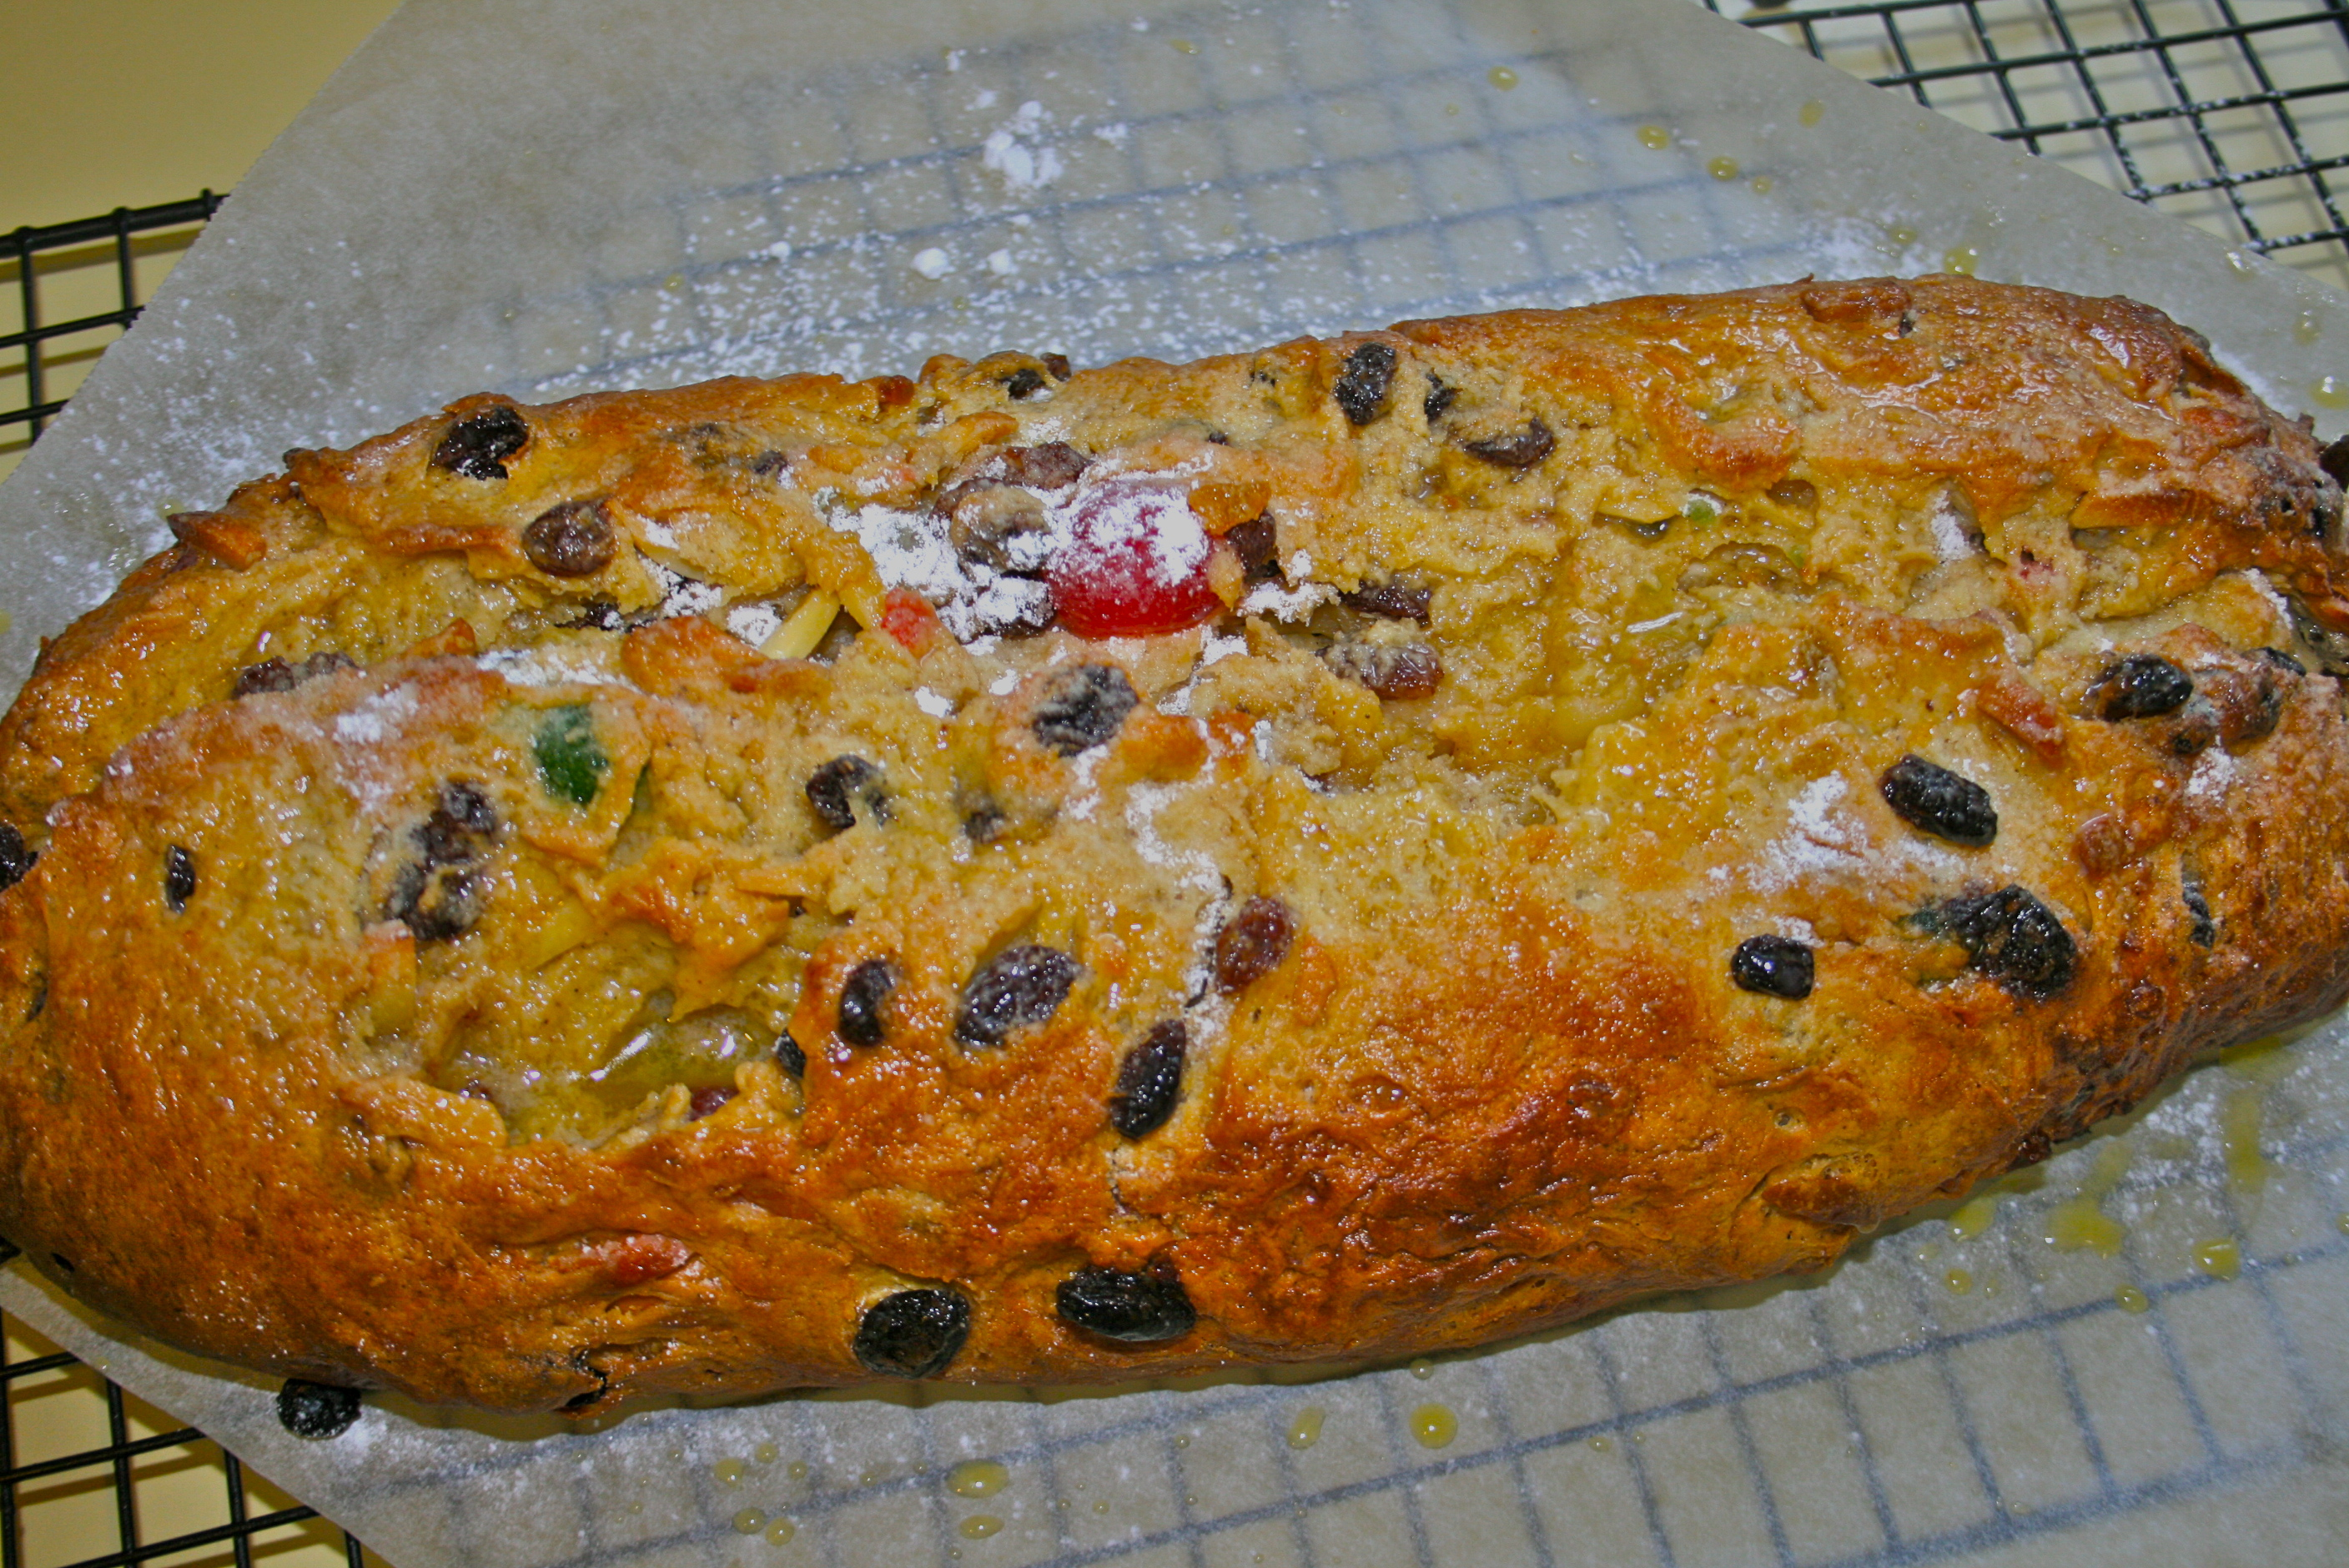 Easter Fruit and Marzipan Bread (my take on a traditional Stollen)